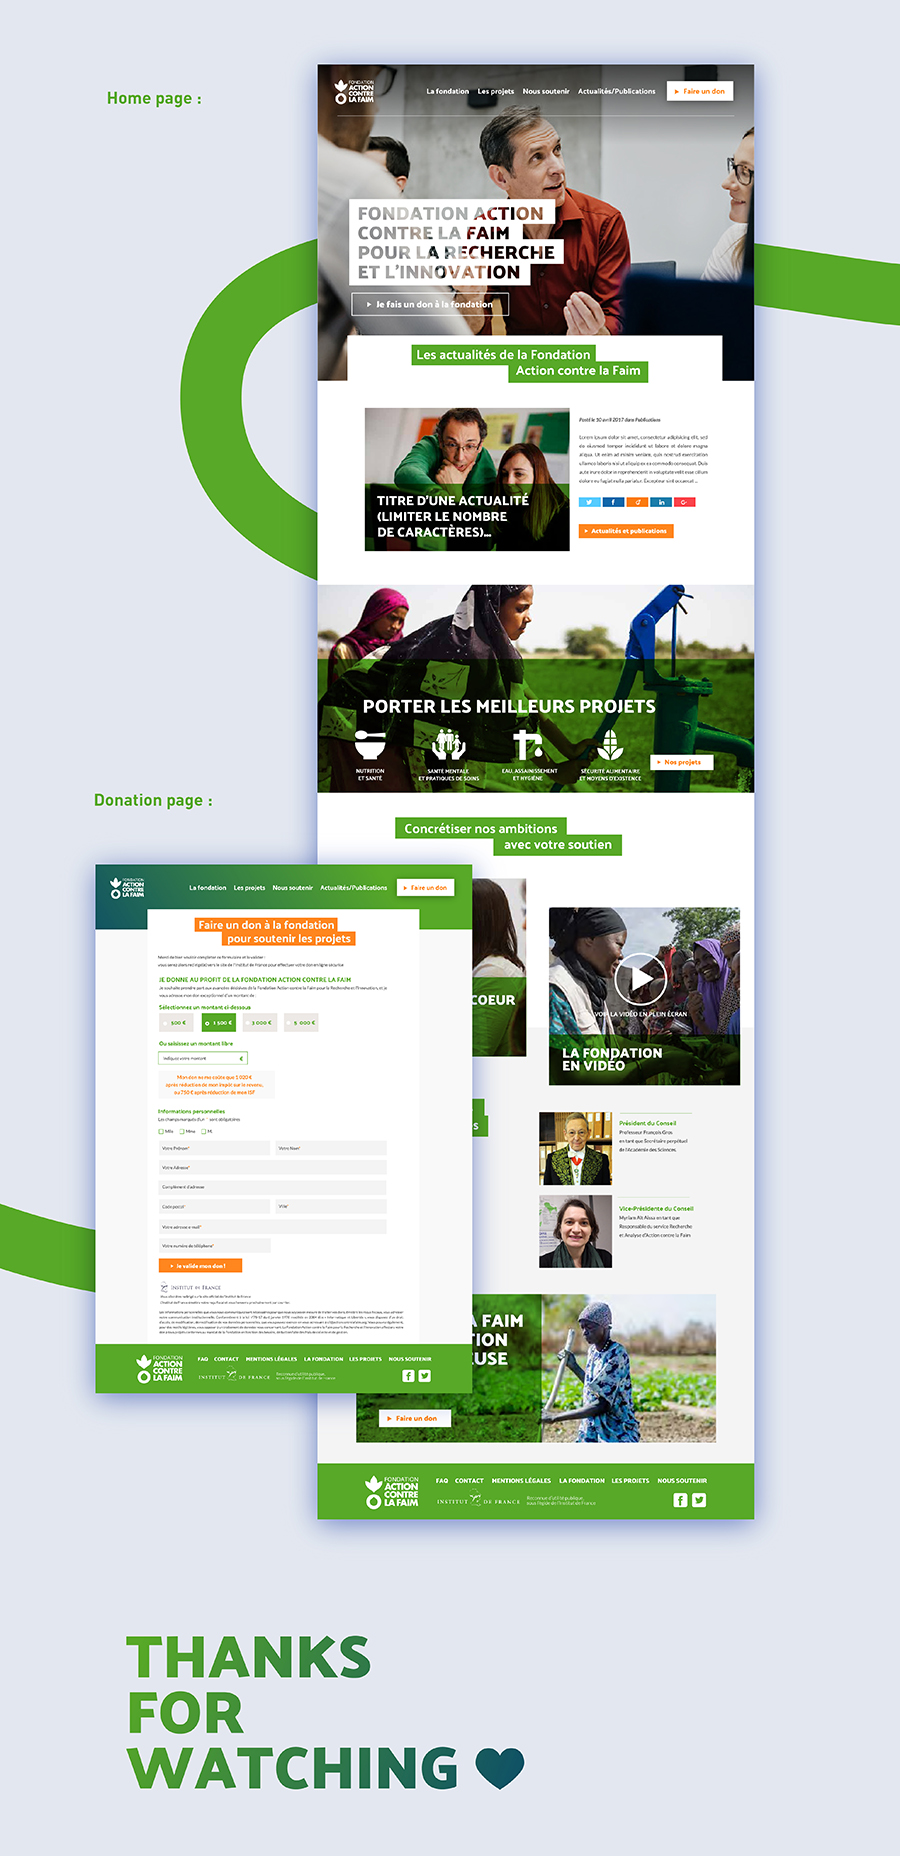 webdesign-action-contre-la-faim-refonte-redesign-4